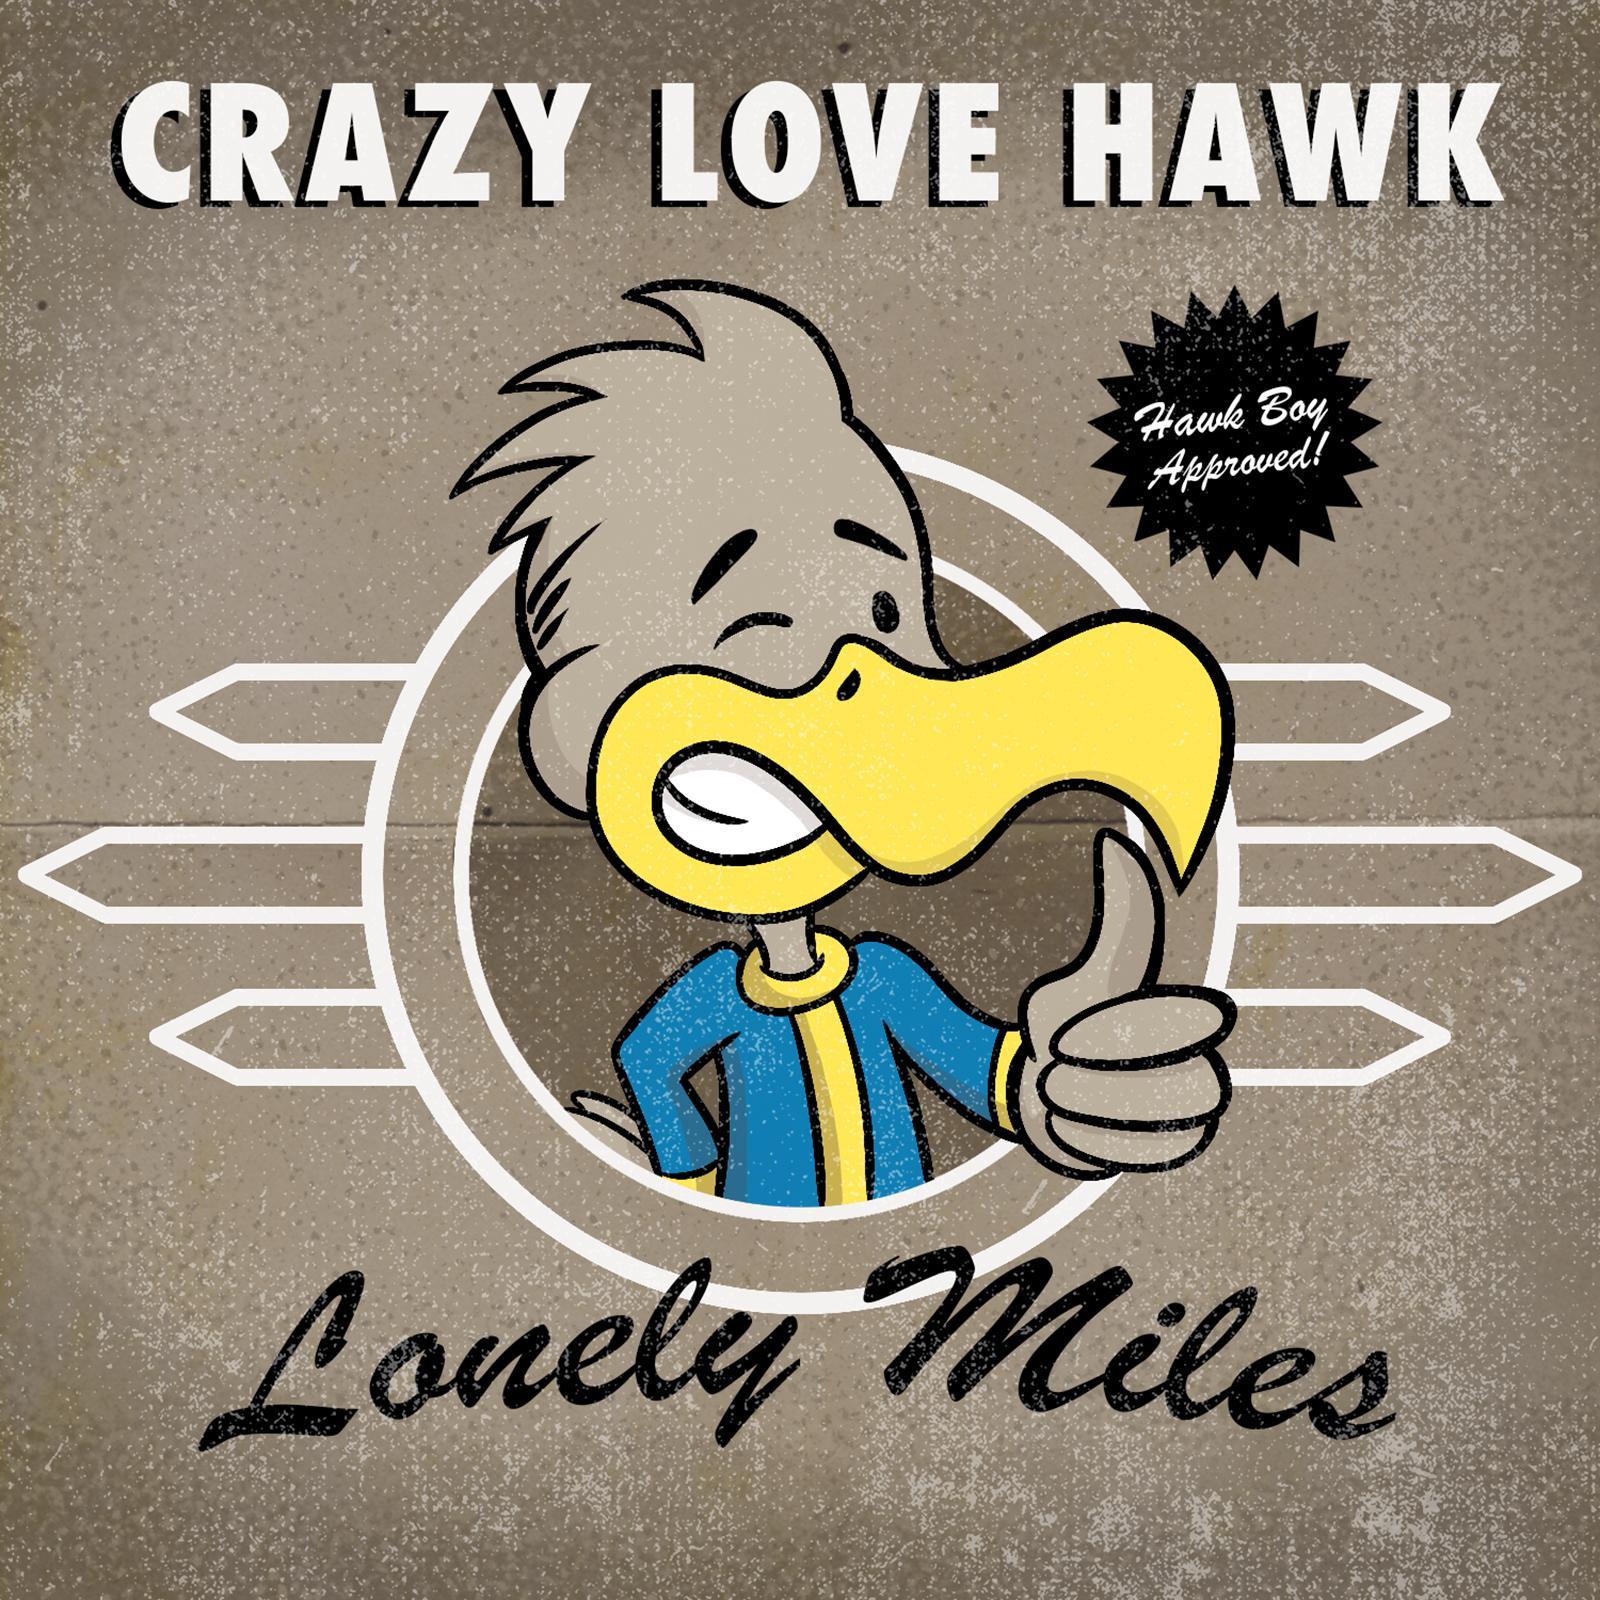 Crazy Love Hawk - Lonely Miles [single] (2016)